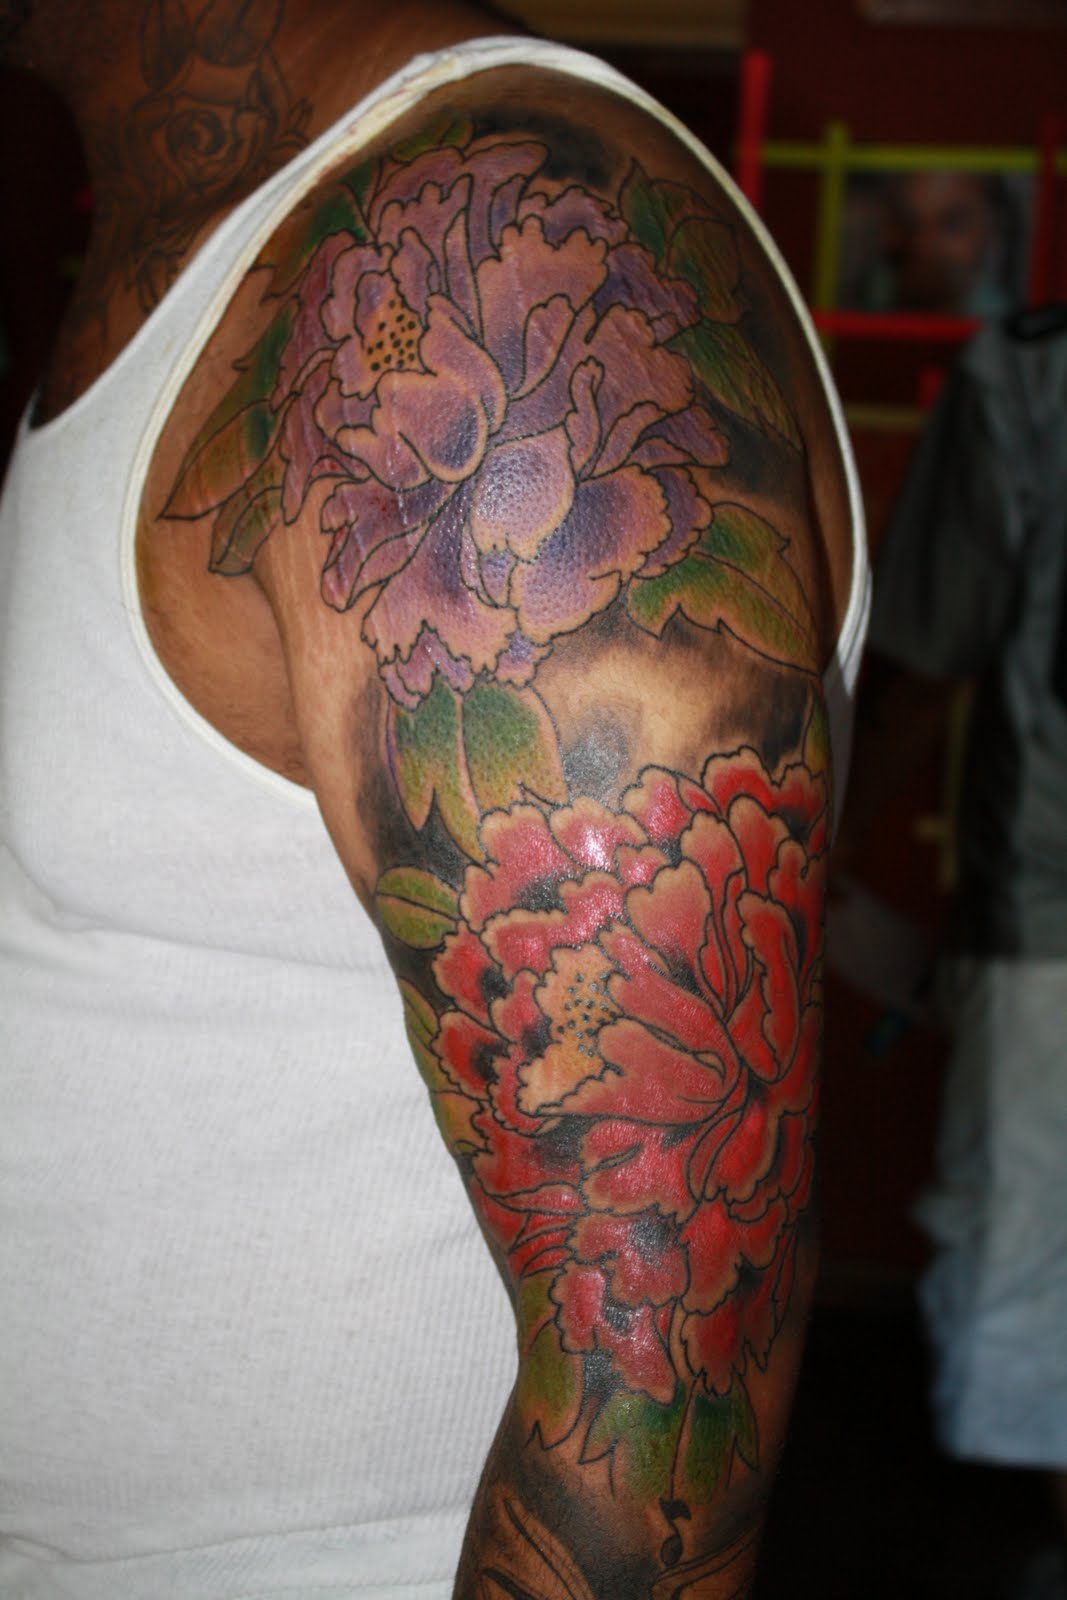 Tattoos @ Black Ink Gallery